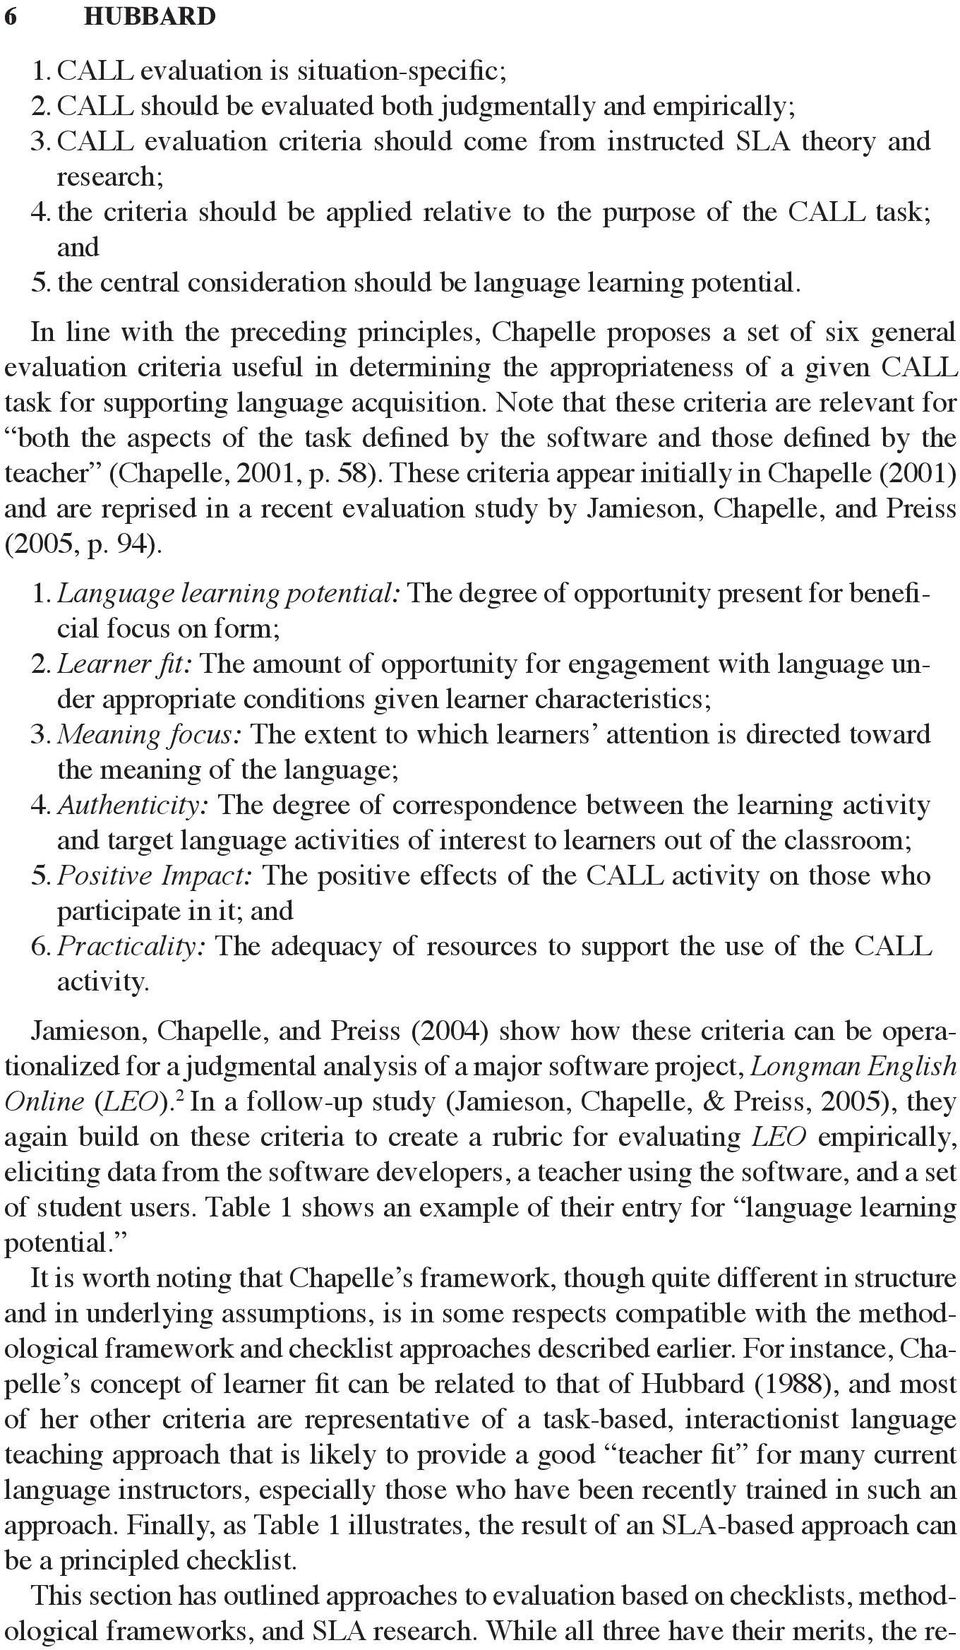 In line with the preceding principles, Chapelle proposes a set of six general evaluation criteria useful in determining the appropriateness of a given CALL task for supporting language acquisition.